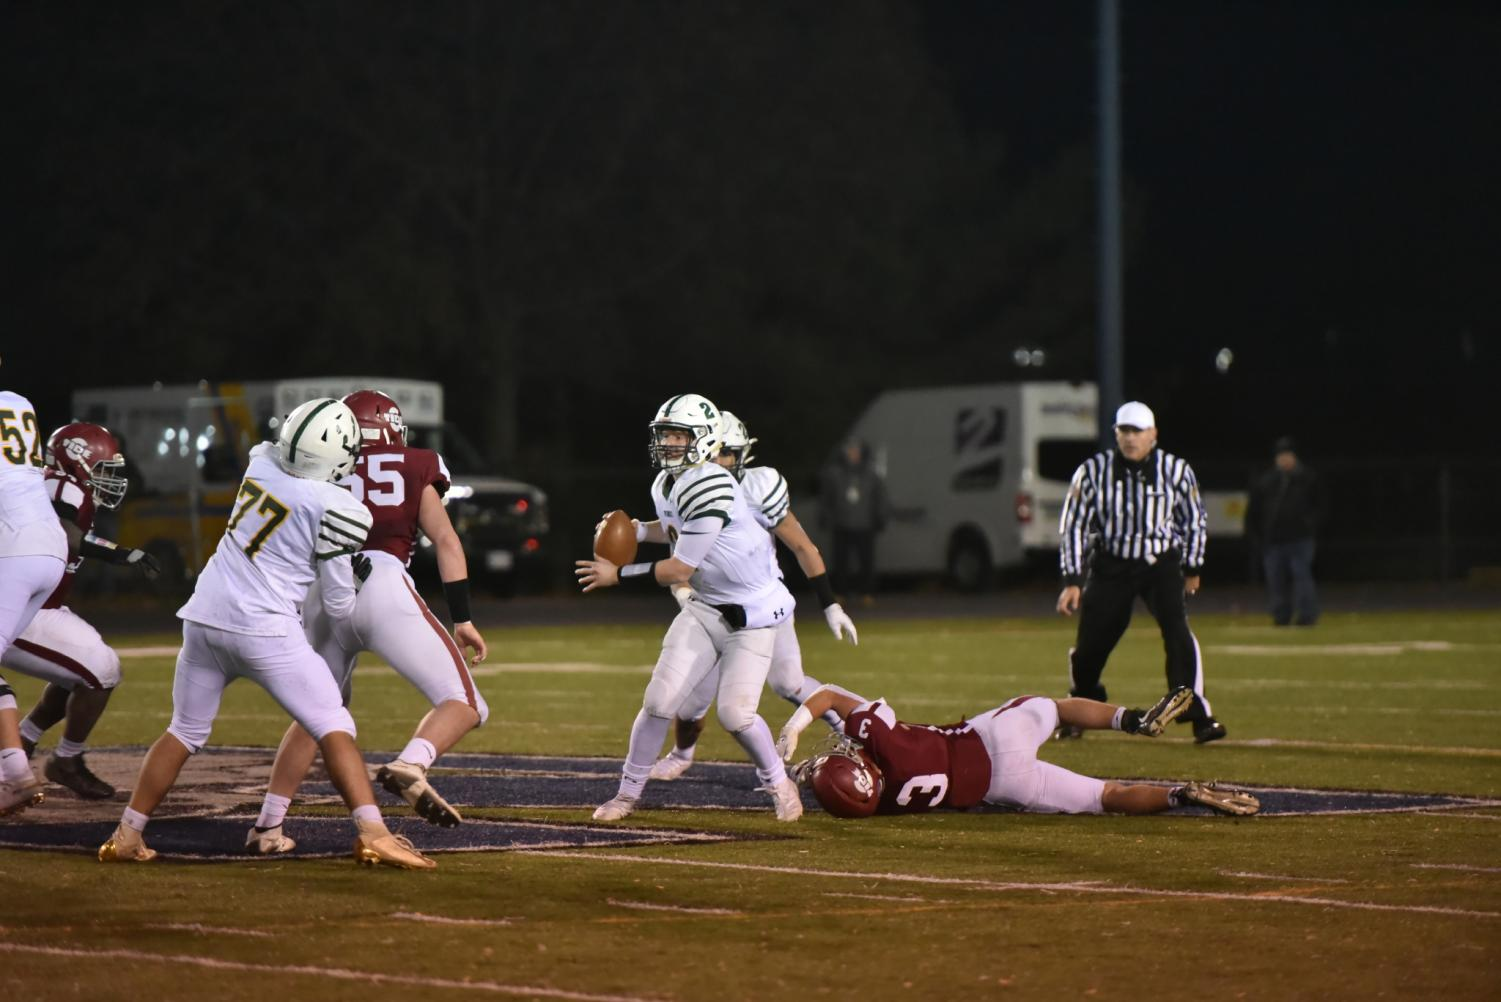 """Junior Robert Walchak dives in an attempt to tackle the ACC quarterback. Walchak played football since he was young and has dreamed about winning the District Championship. """"We deserved that win so much more than any other team in the district,"""" said Walchak."""